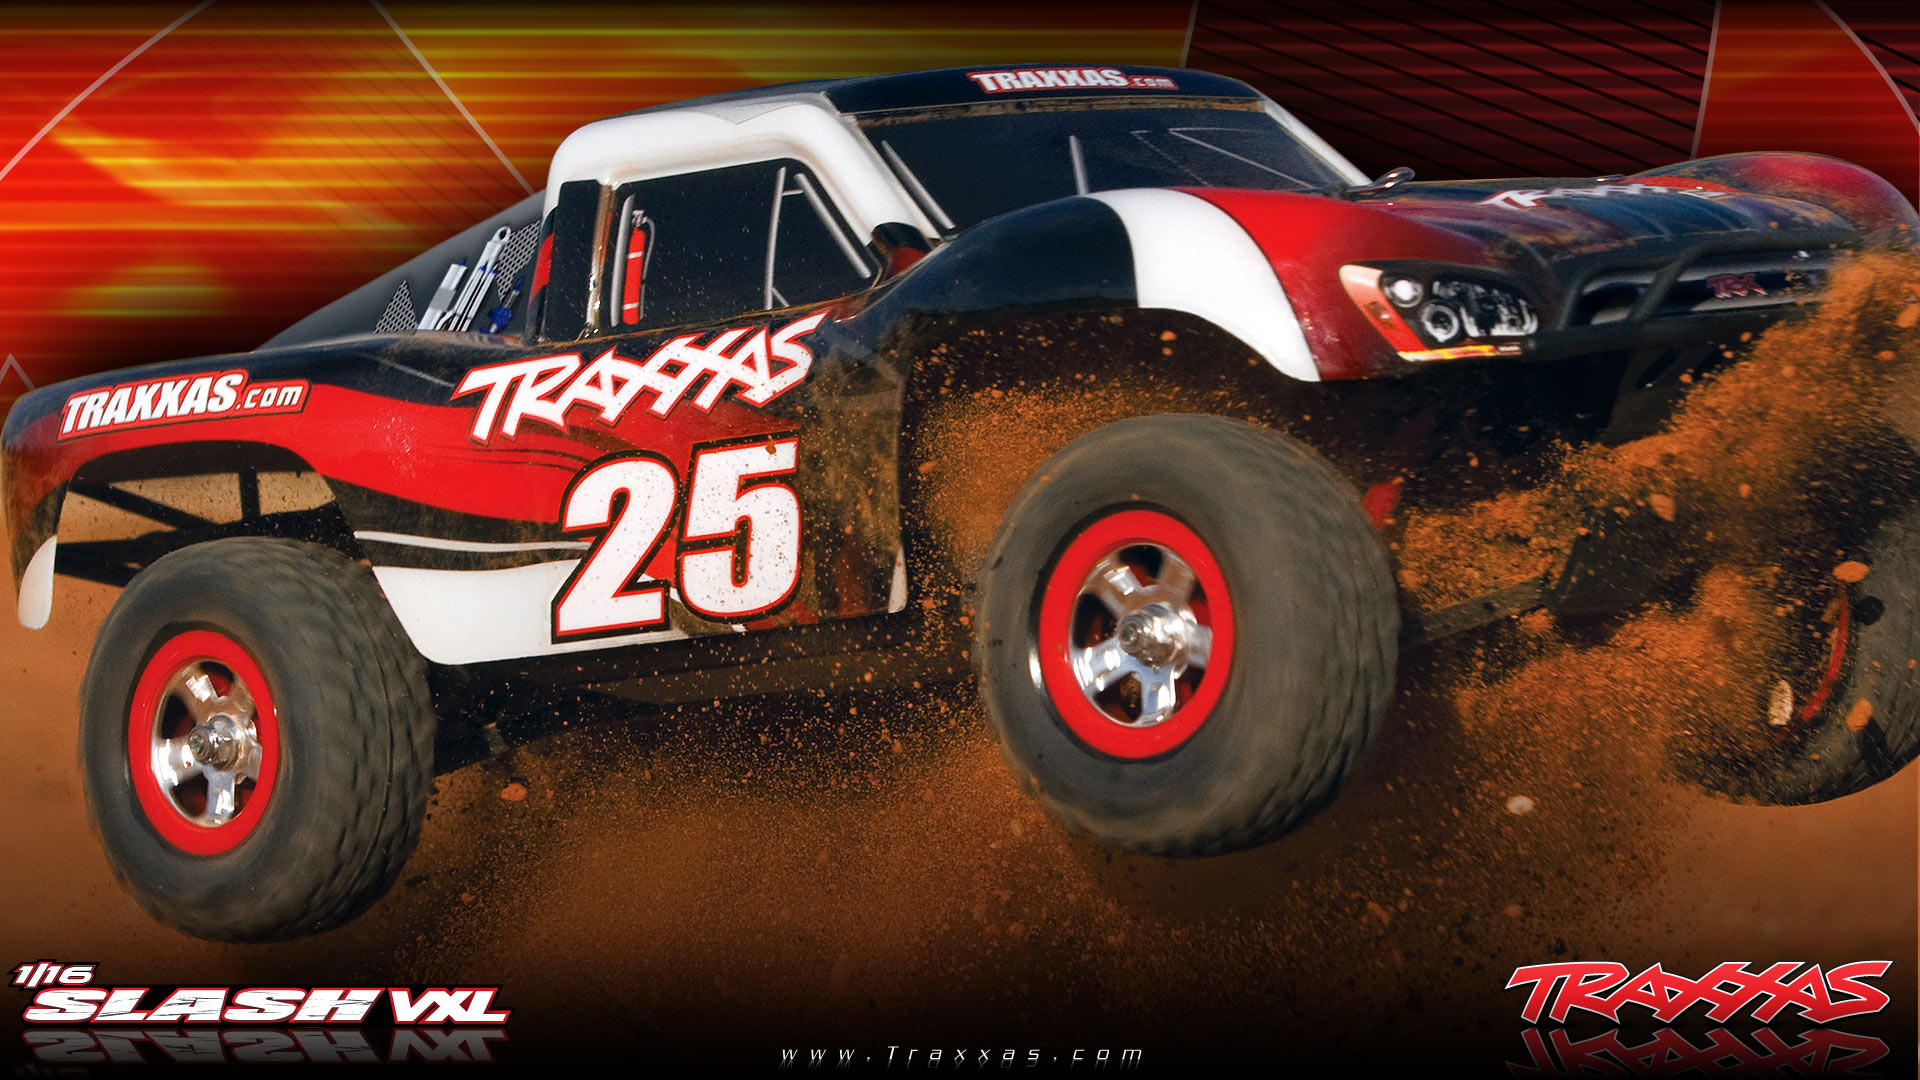 1920x1080 Traxxas Slash 1 16 wallpaper - 45632